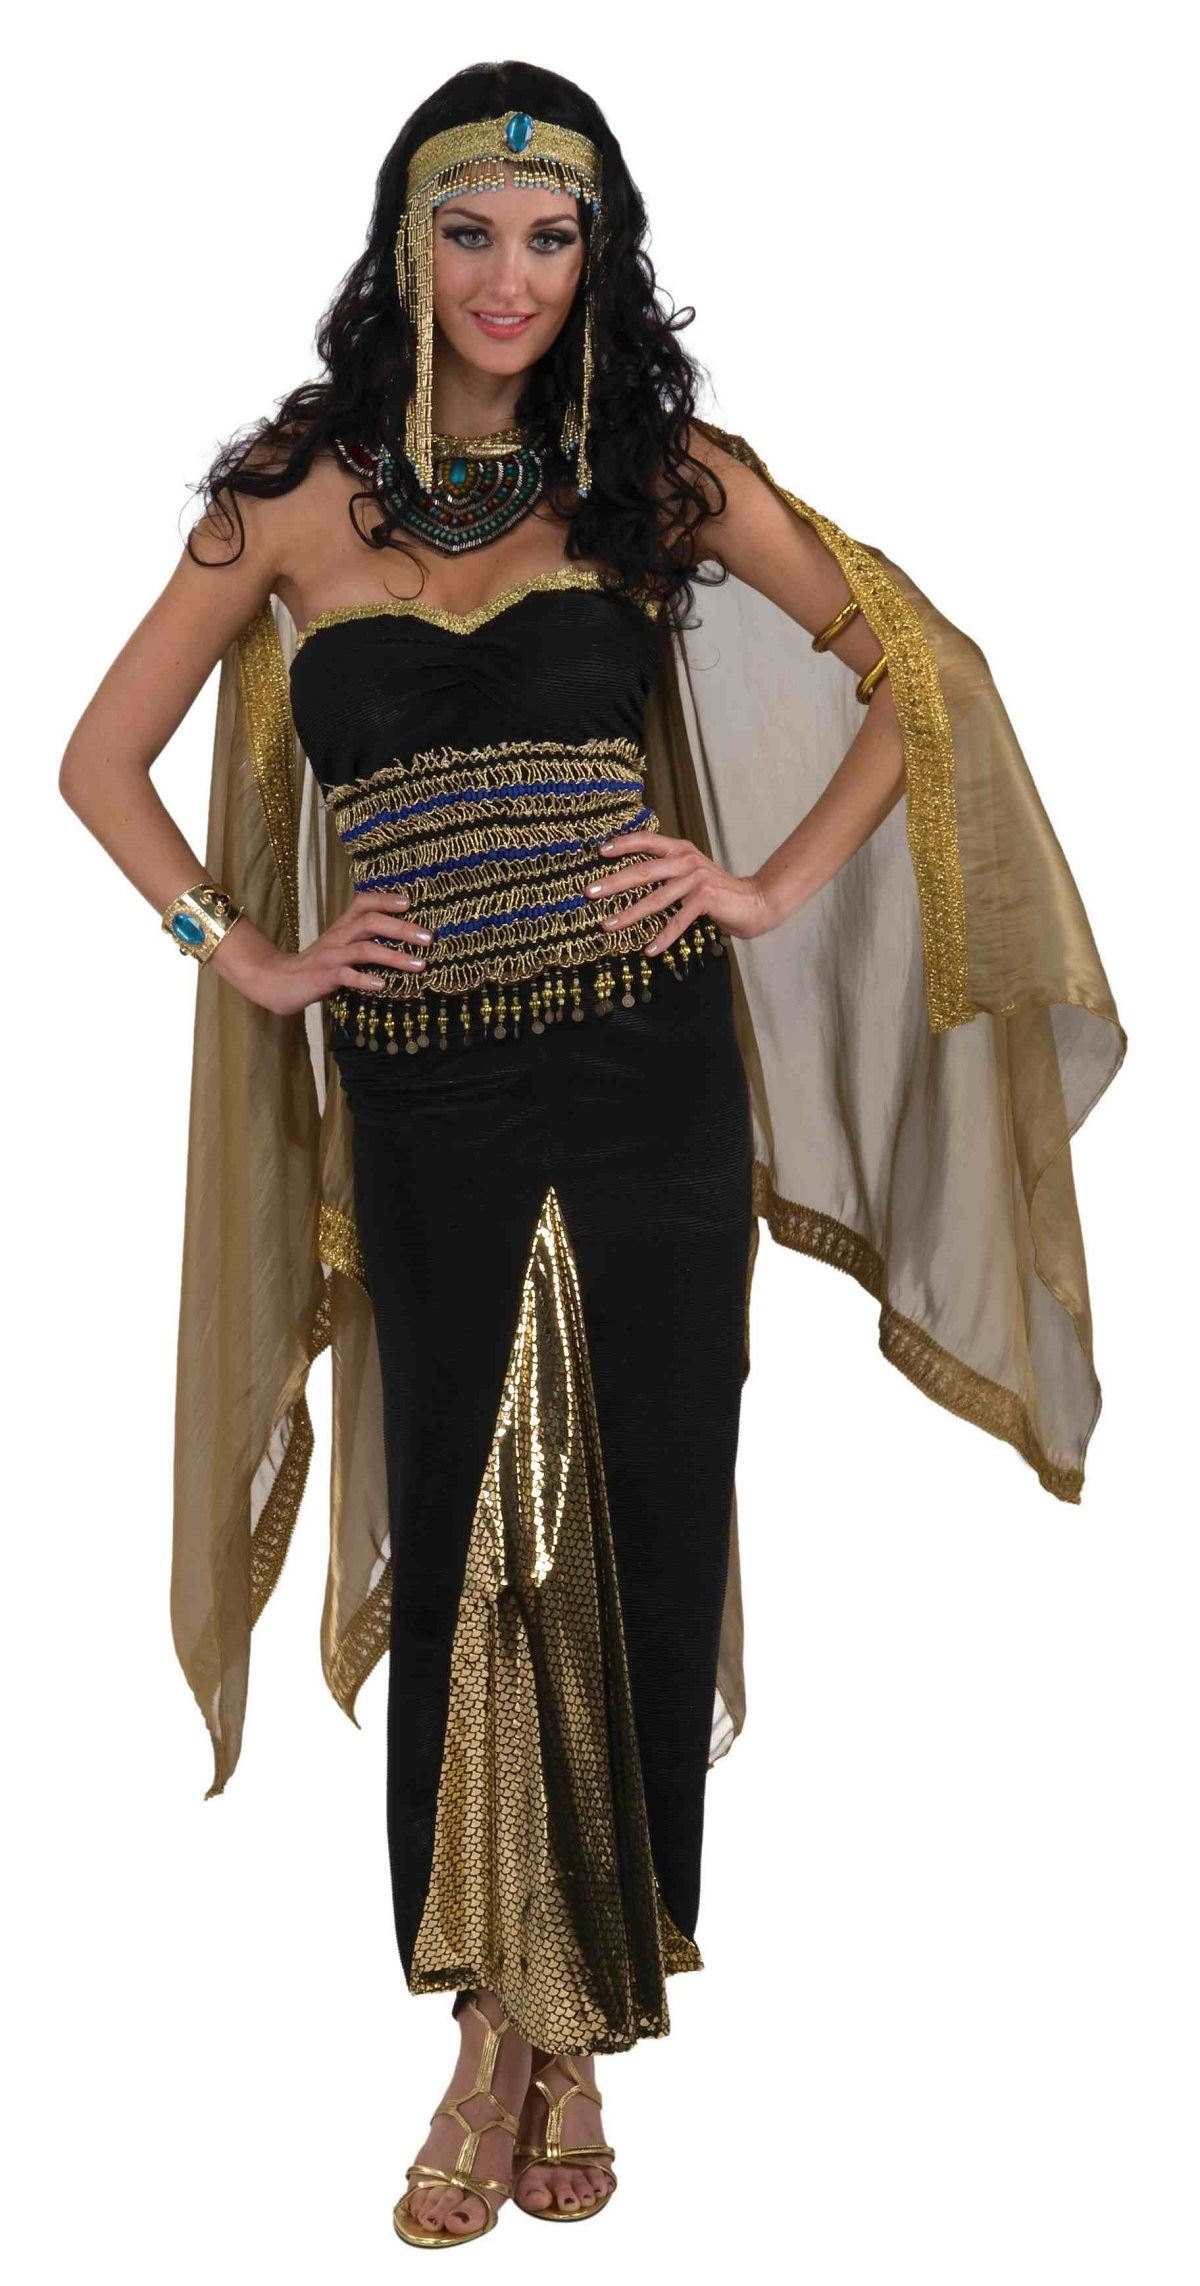 Adult Priestess Of The Nile Woman Egyptian Costume  sc 1 st  The Costume Land & Adult Priestess Of The Nile Woman Egyptian Costume | $45.99 | The ...